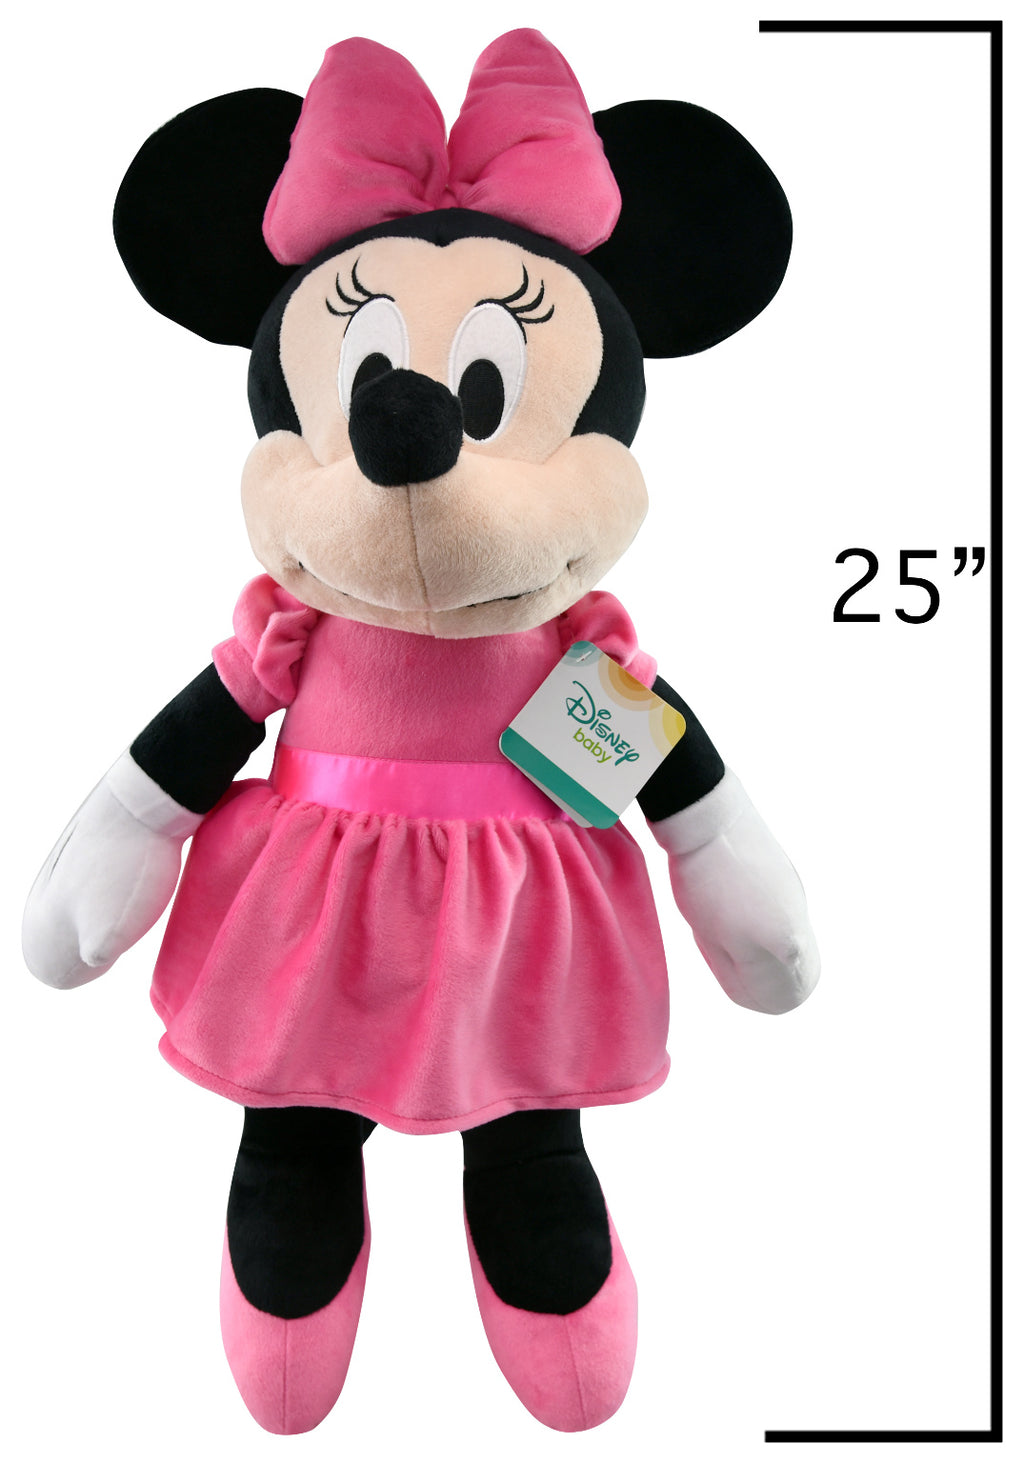 "25"" Minnie Mouse Plush Toy - Pink - CASE OF 12"